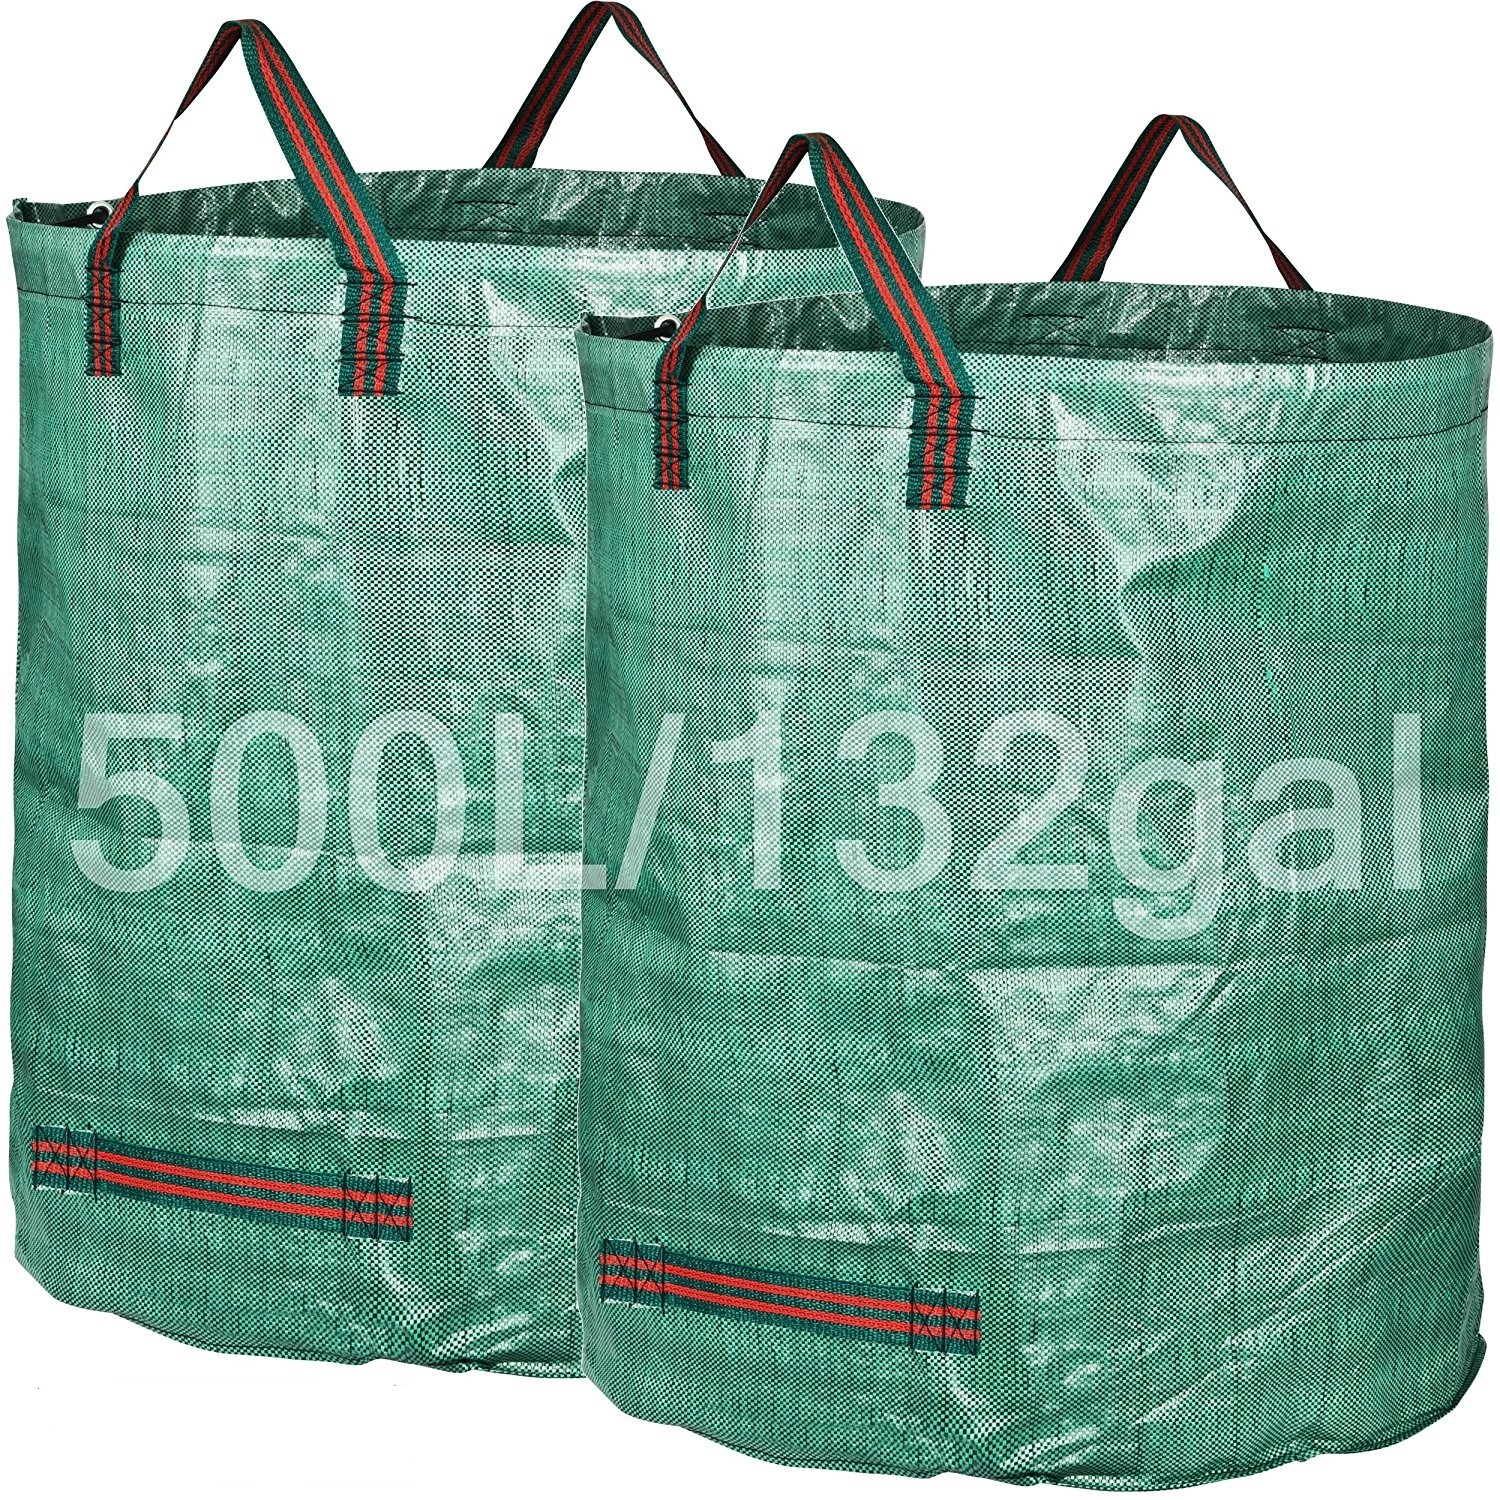 Garden Waste Reusable Bags Yard Clean Up Leaf Holder